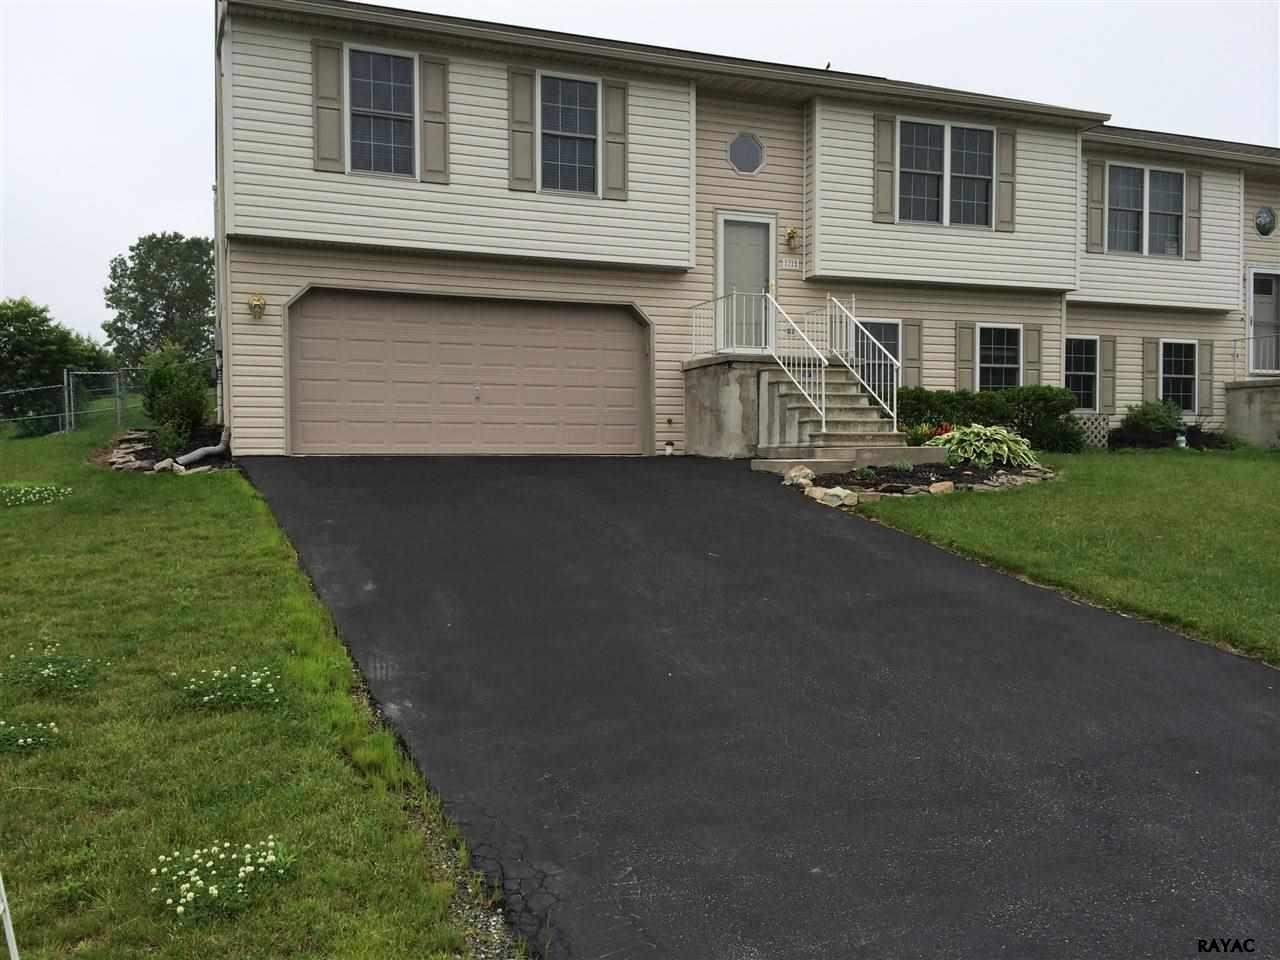 72 Greenfield St, Manchester, PA 17345